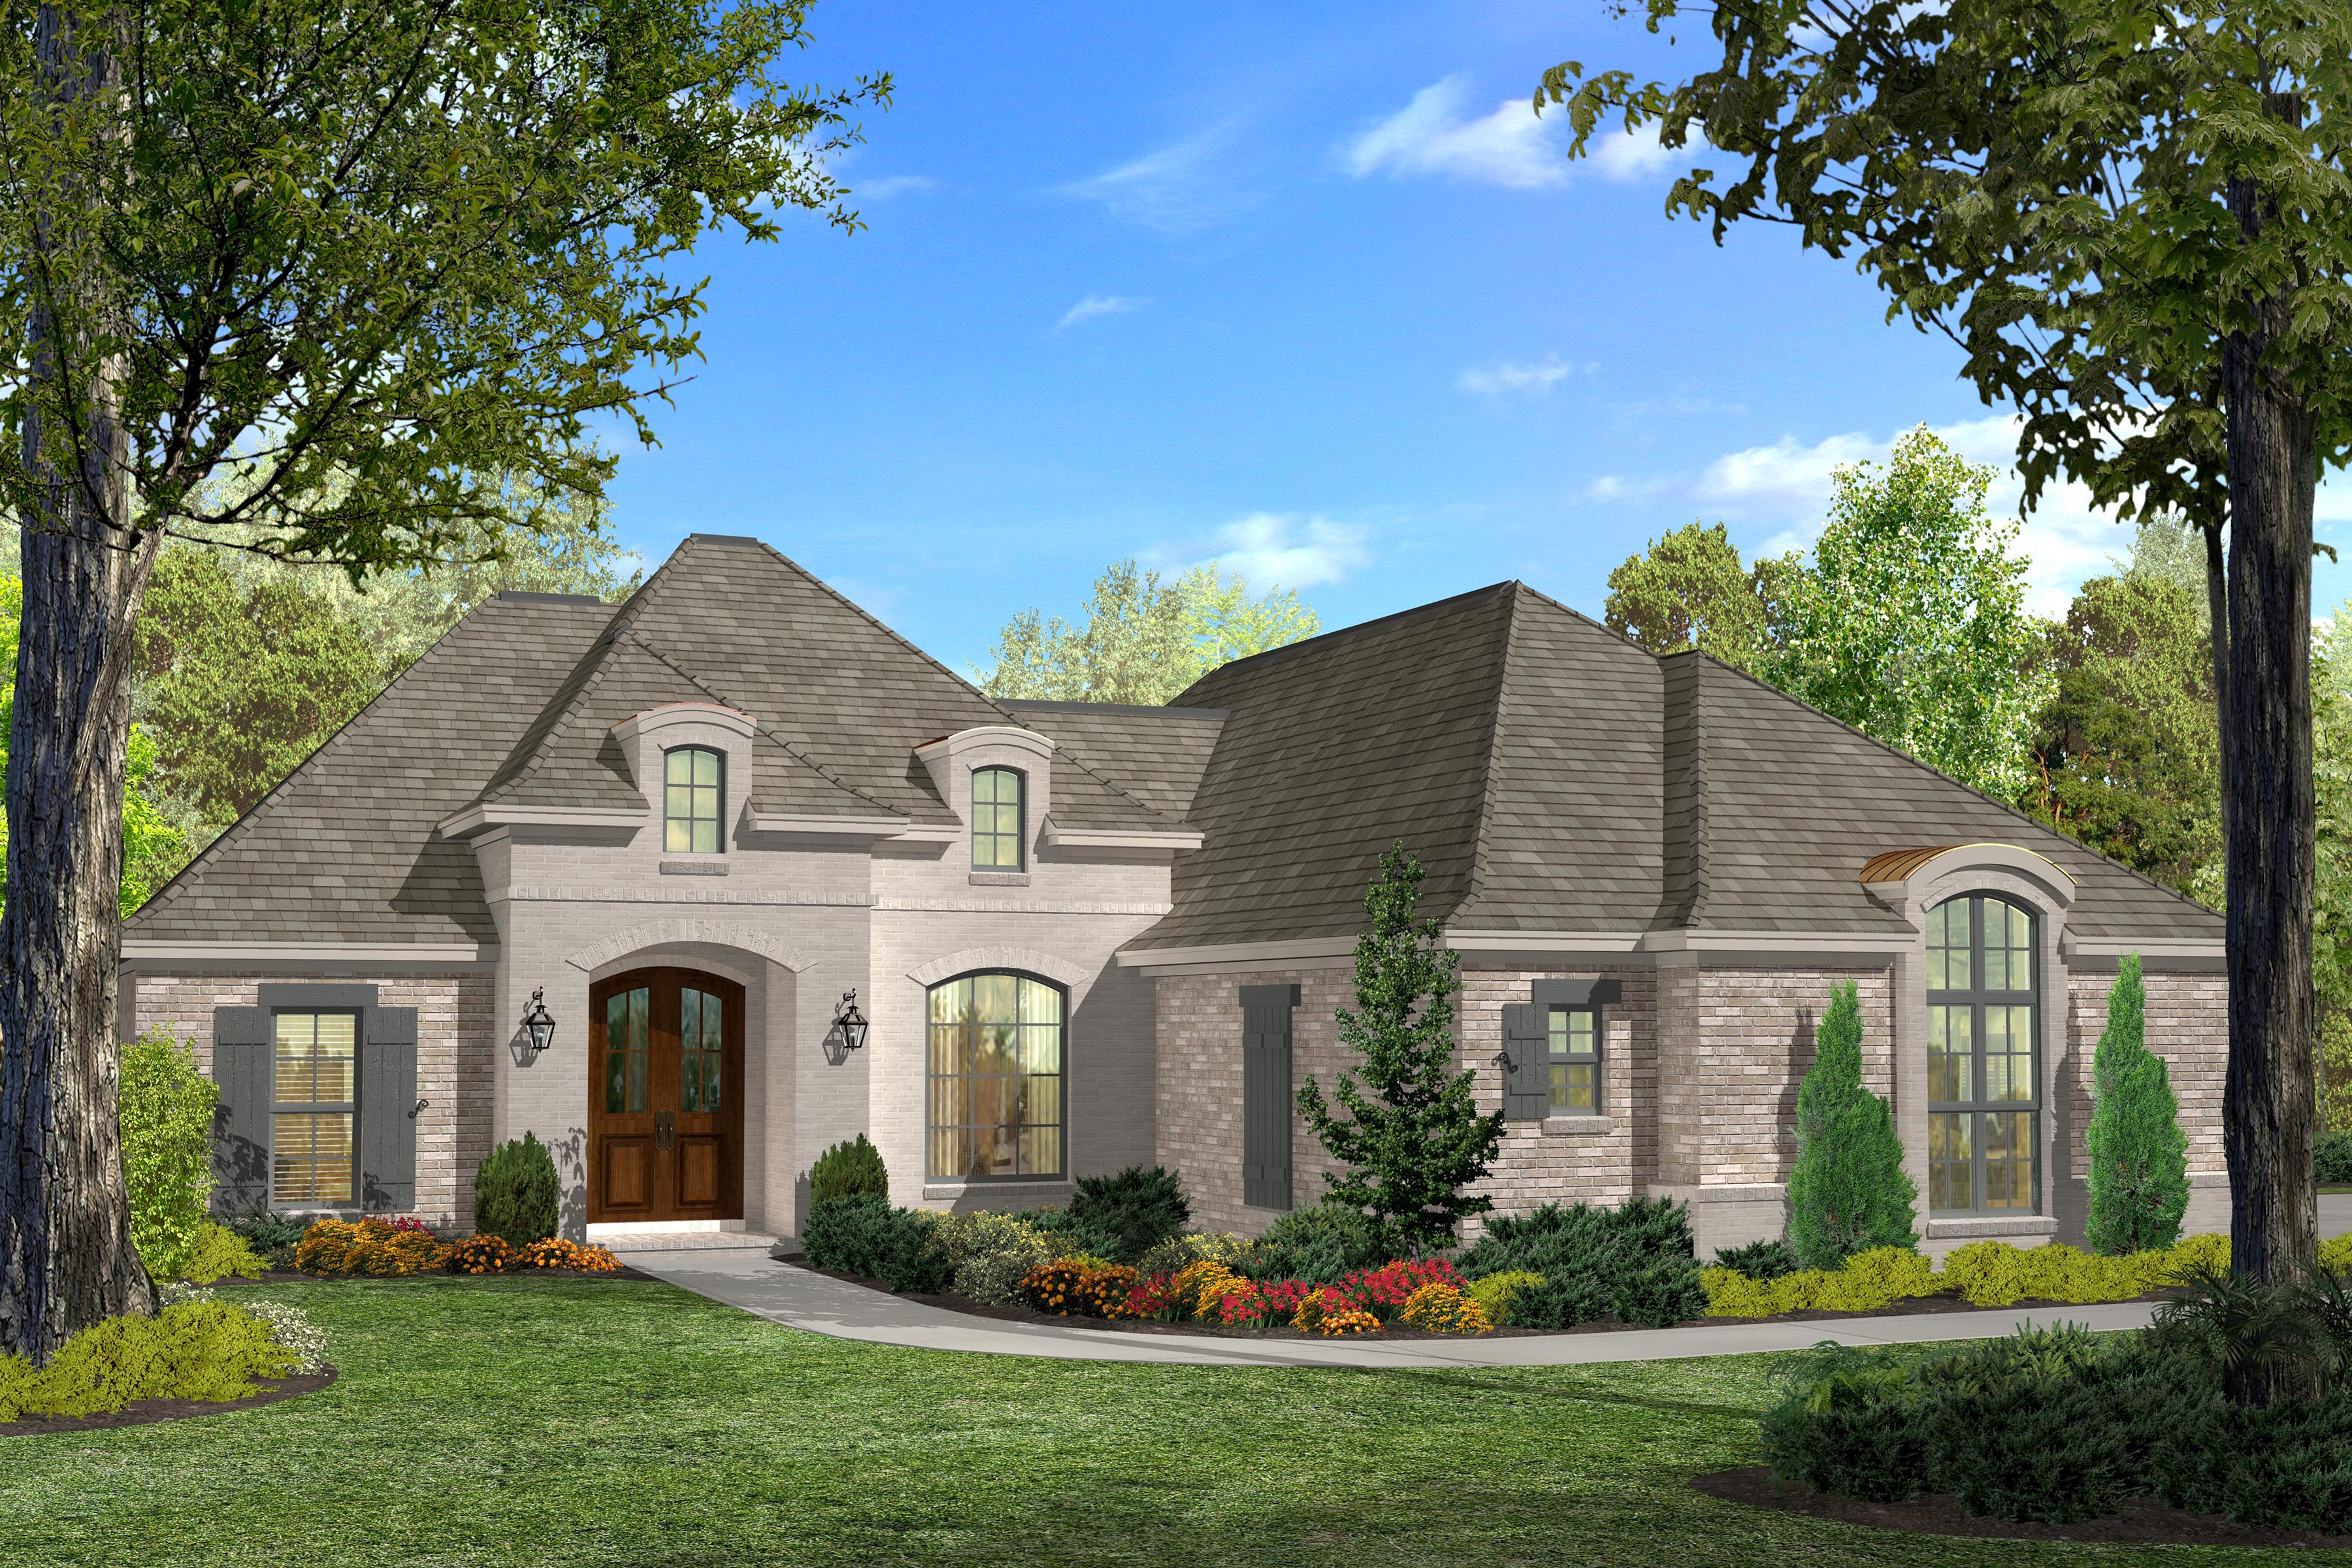 Acadian House Plan 1421124 3 Bedrm 1937 Sq Ft Home  ThePlanCollection